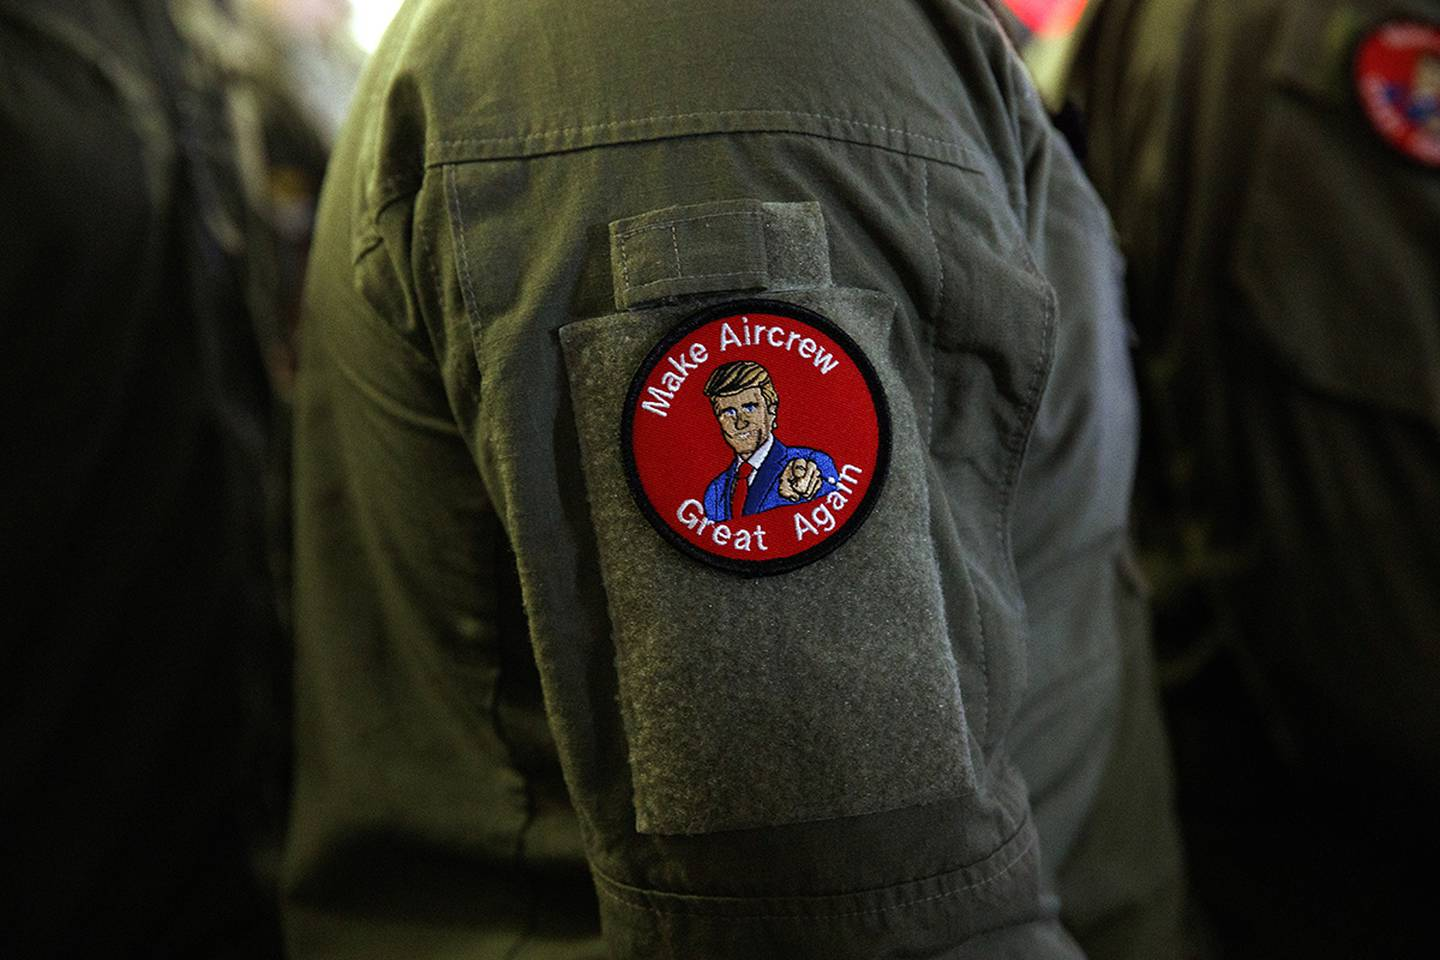 """A service member wears a patch that says """"Make Aircrew Great Again"""" as they listen to President Donald Trump speak to troops at a Memorial Day event aboard the USS Wasp on May 28, 2019, in Yokosuka, Japan."""